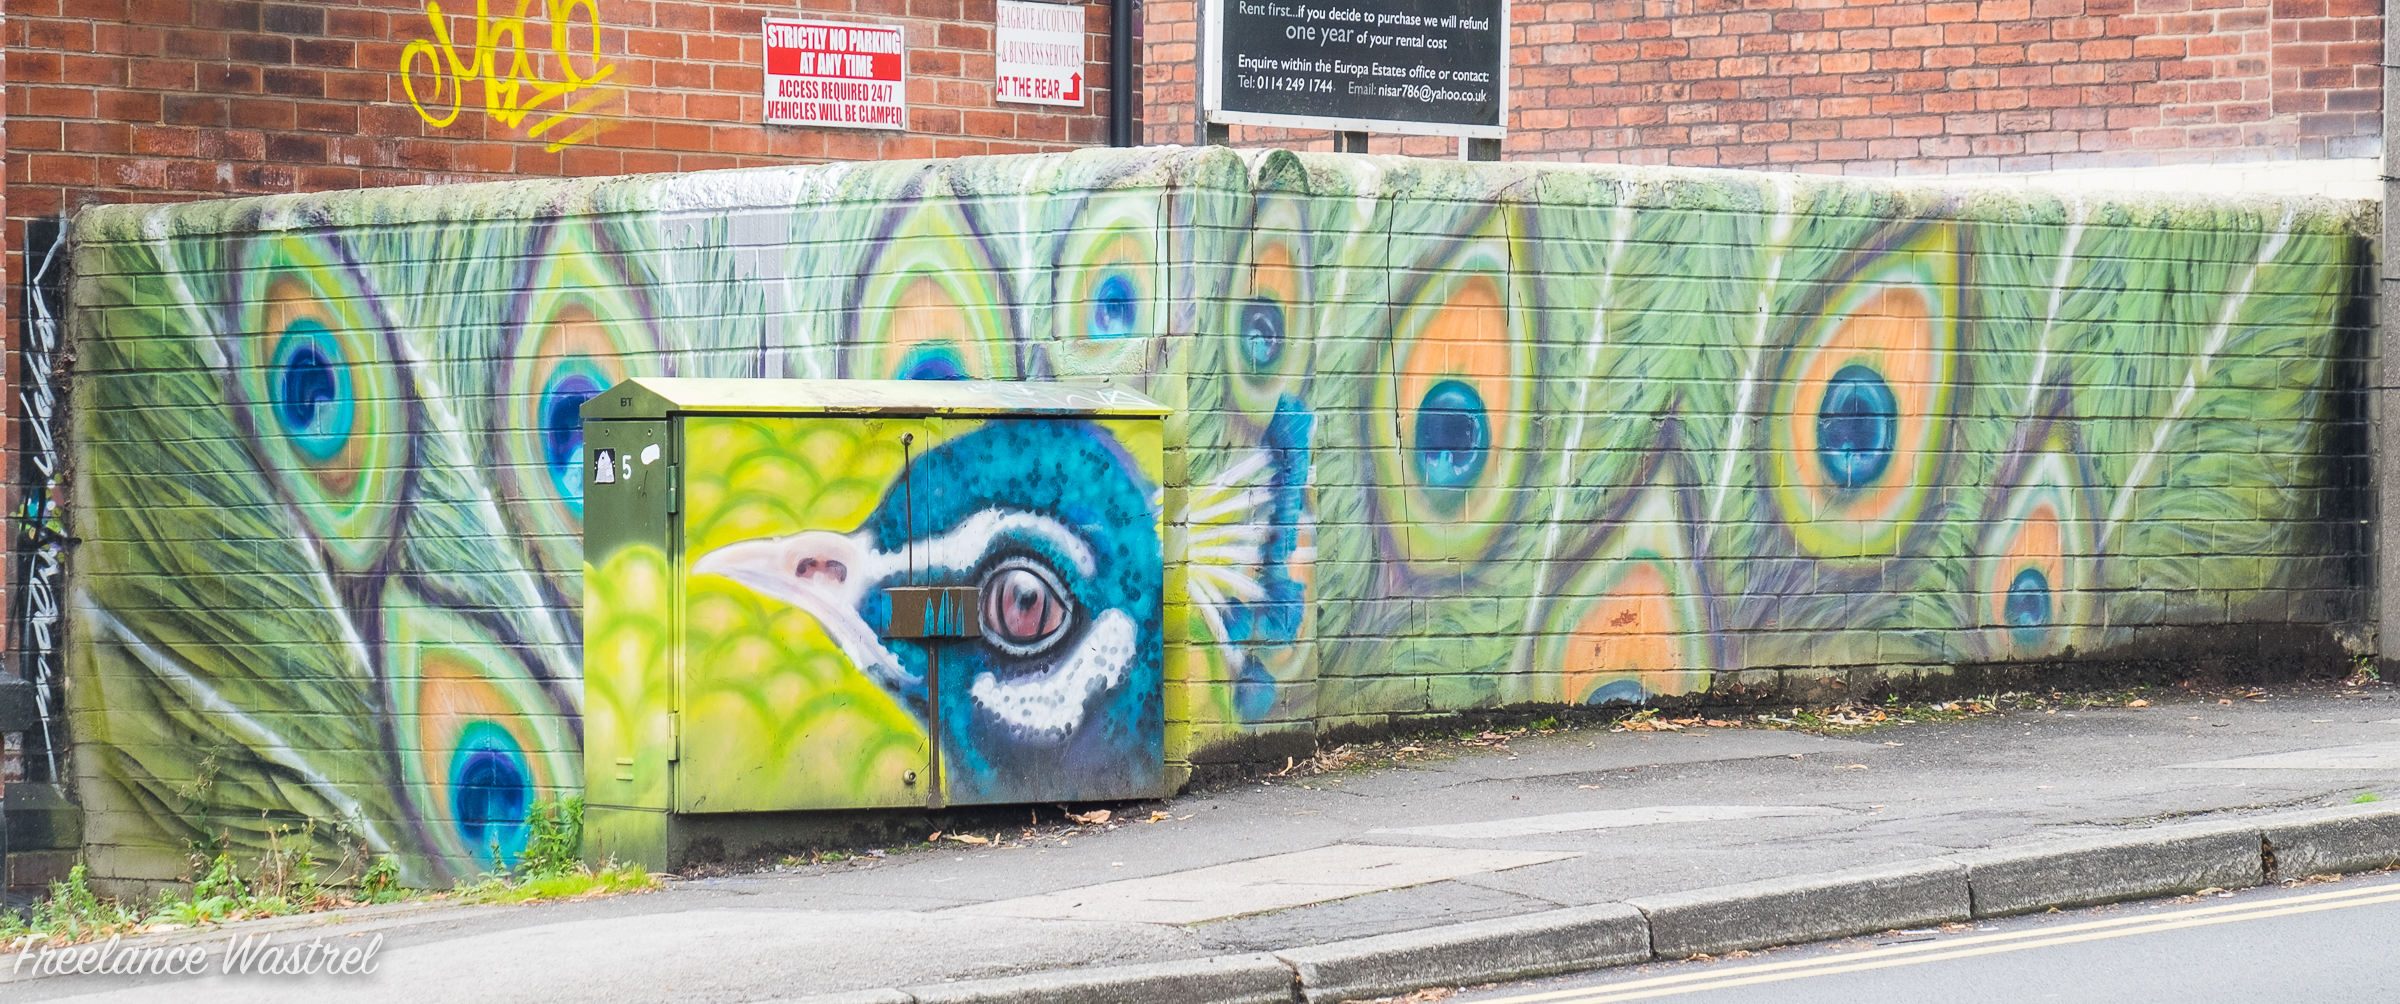 Peacock, Sheffield, September 2017